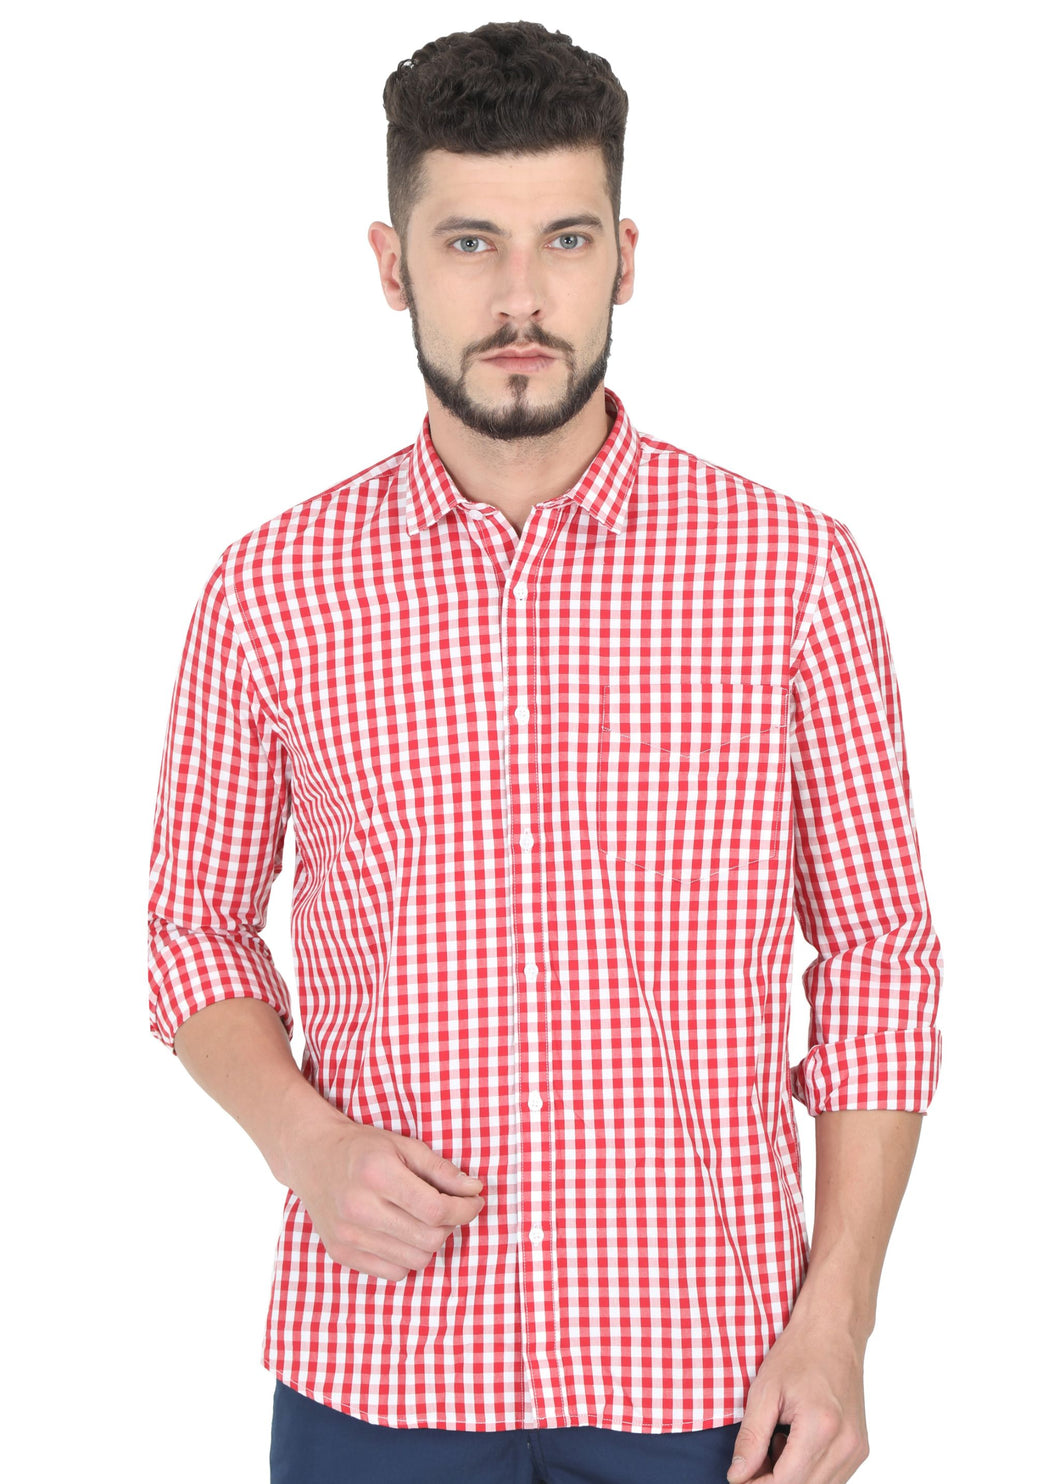 Tusok-red-chessCheckered Shirtimage-Red White Check (1)